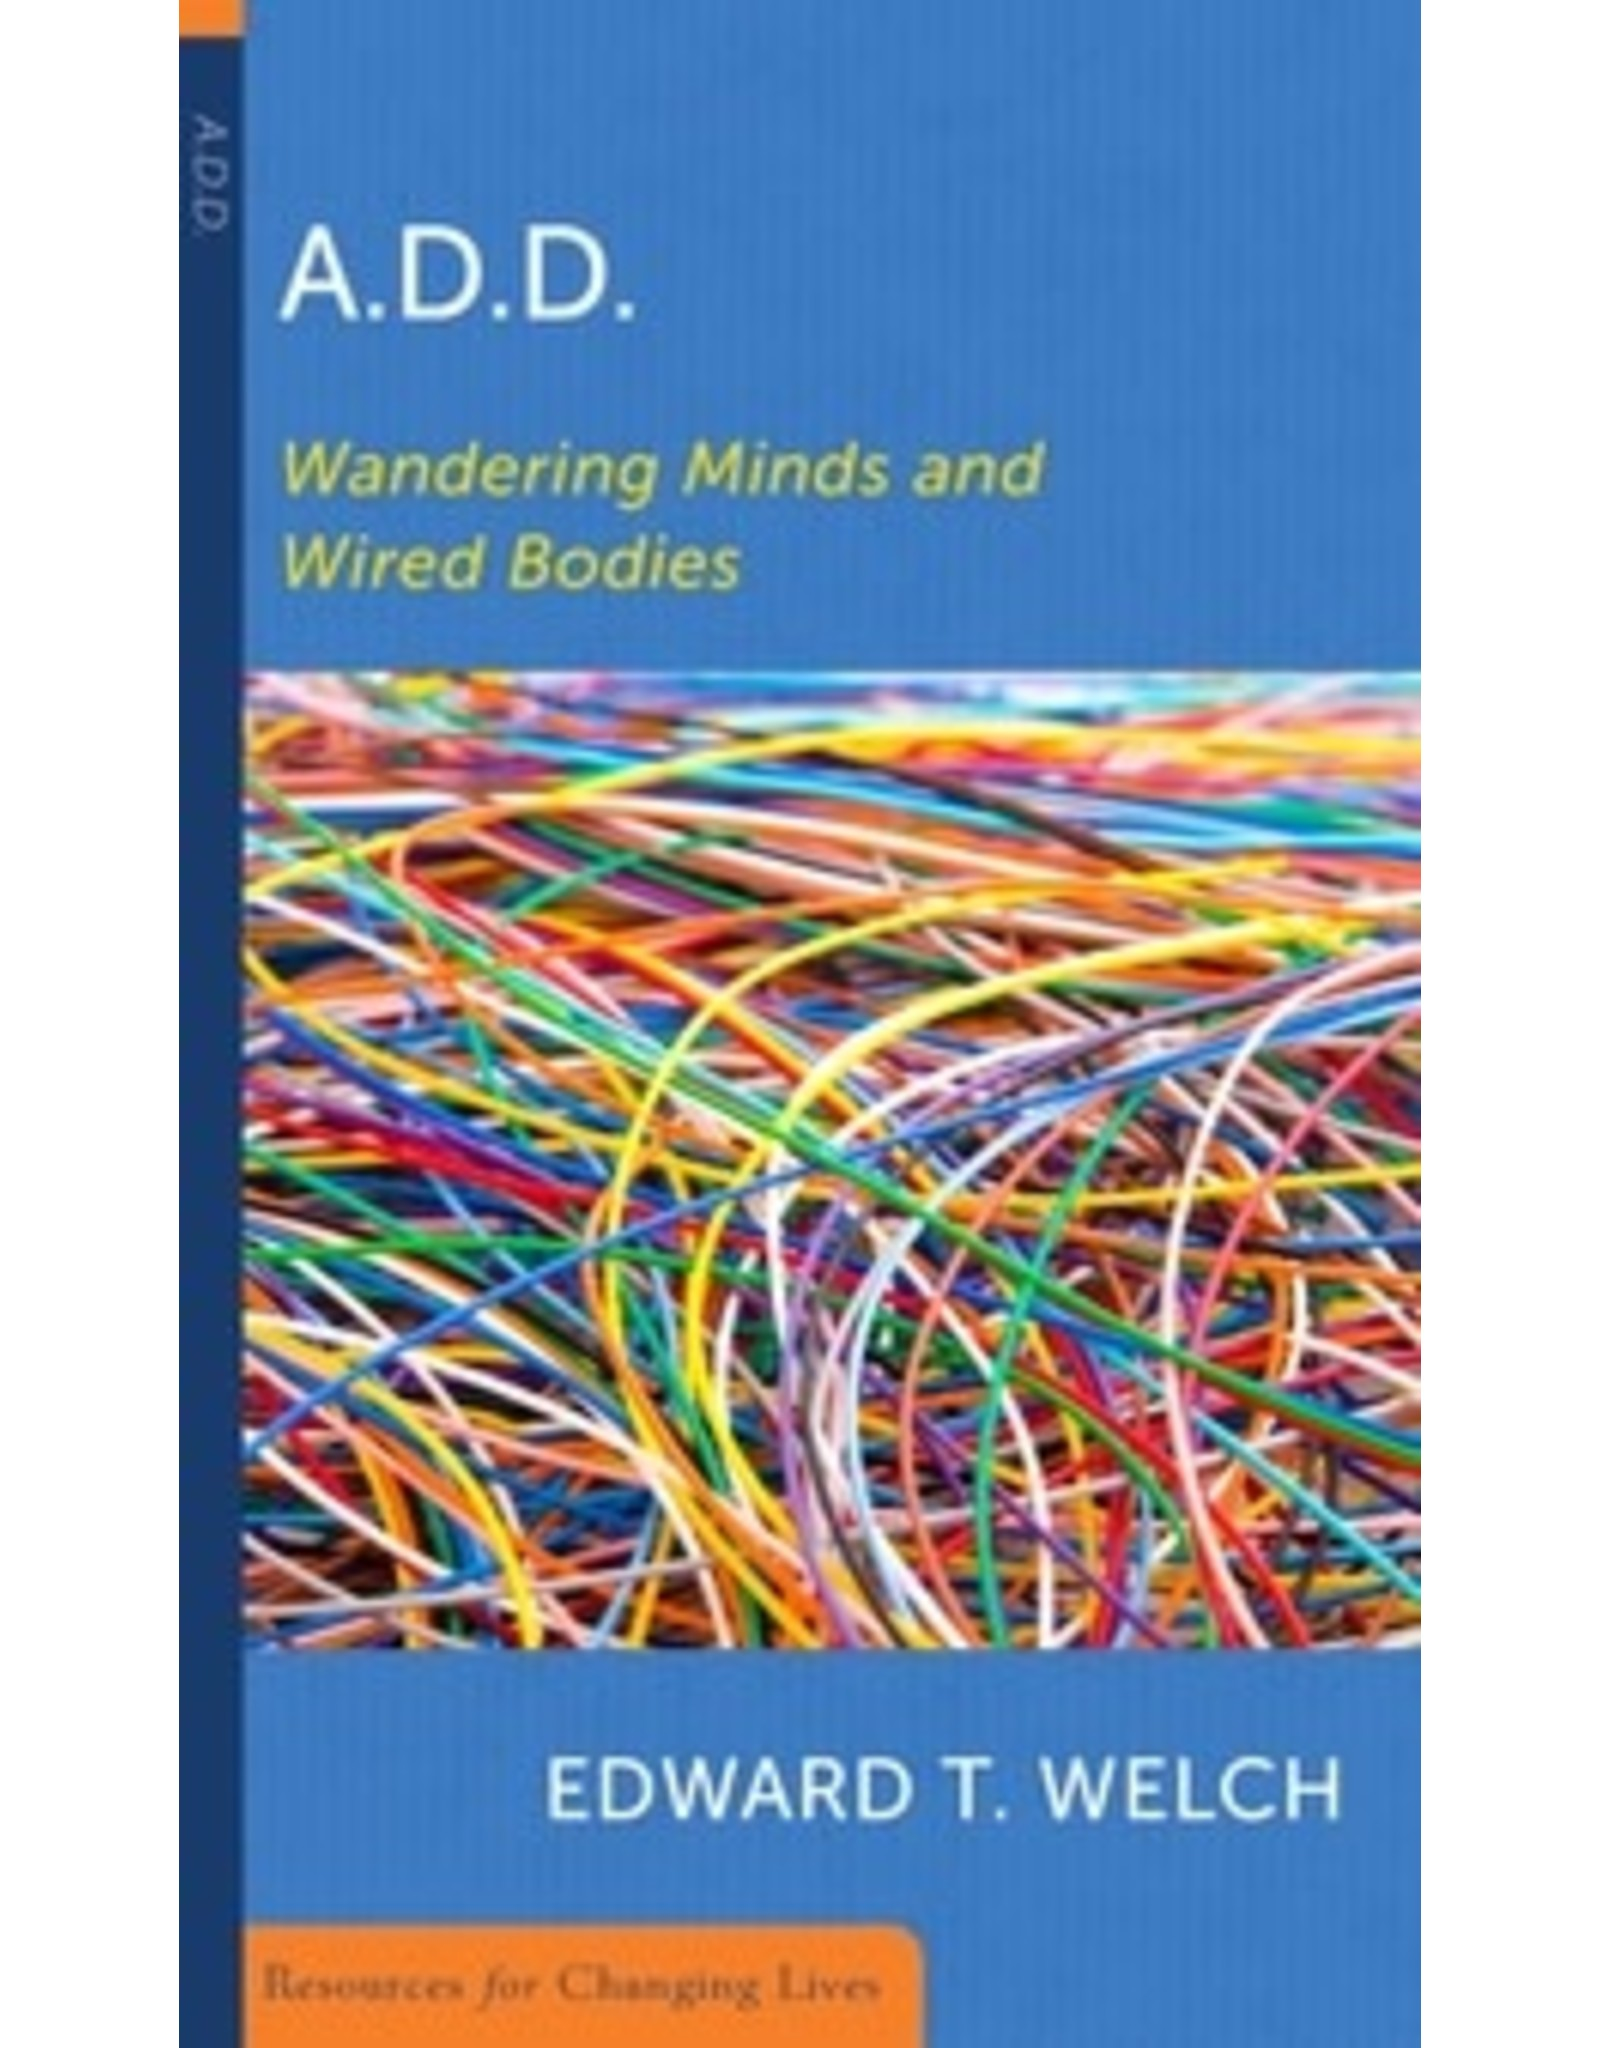 Welch ADD: Wandering minds and wired bodies